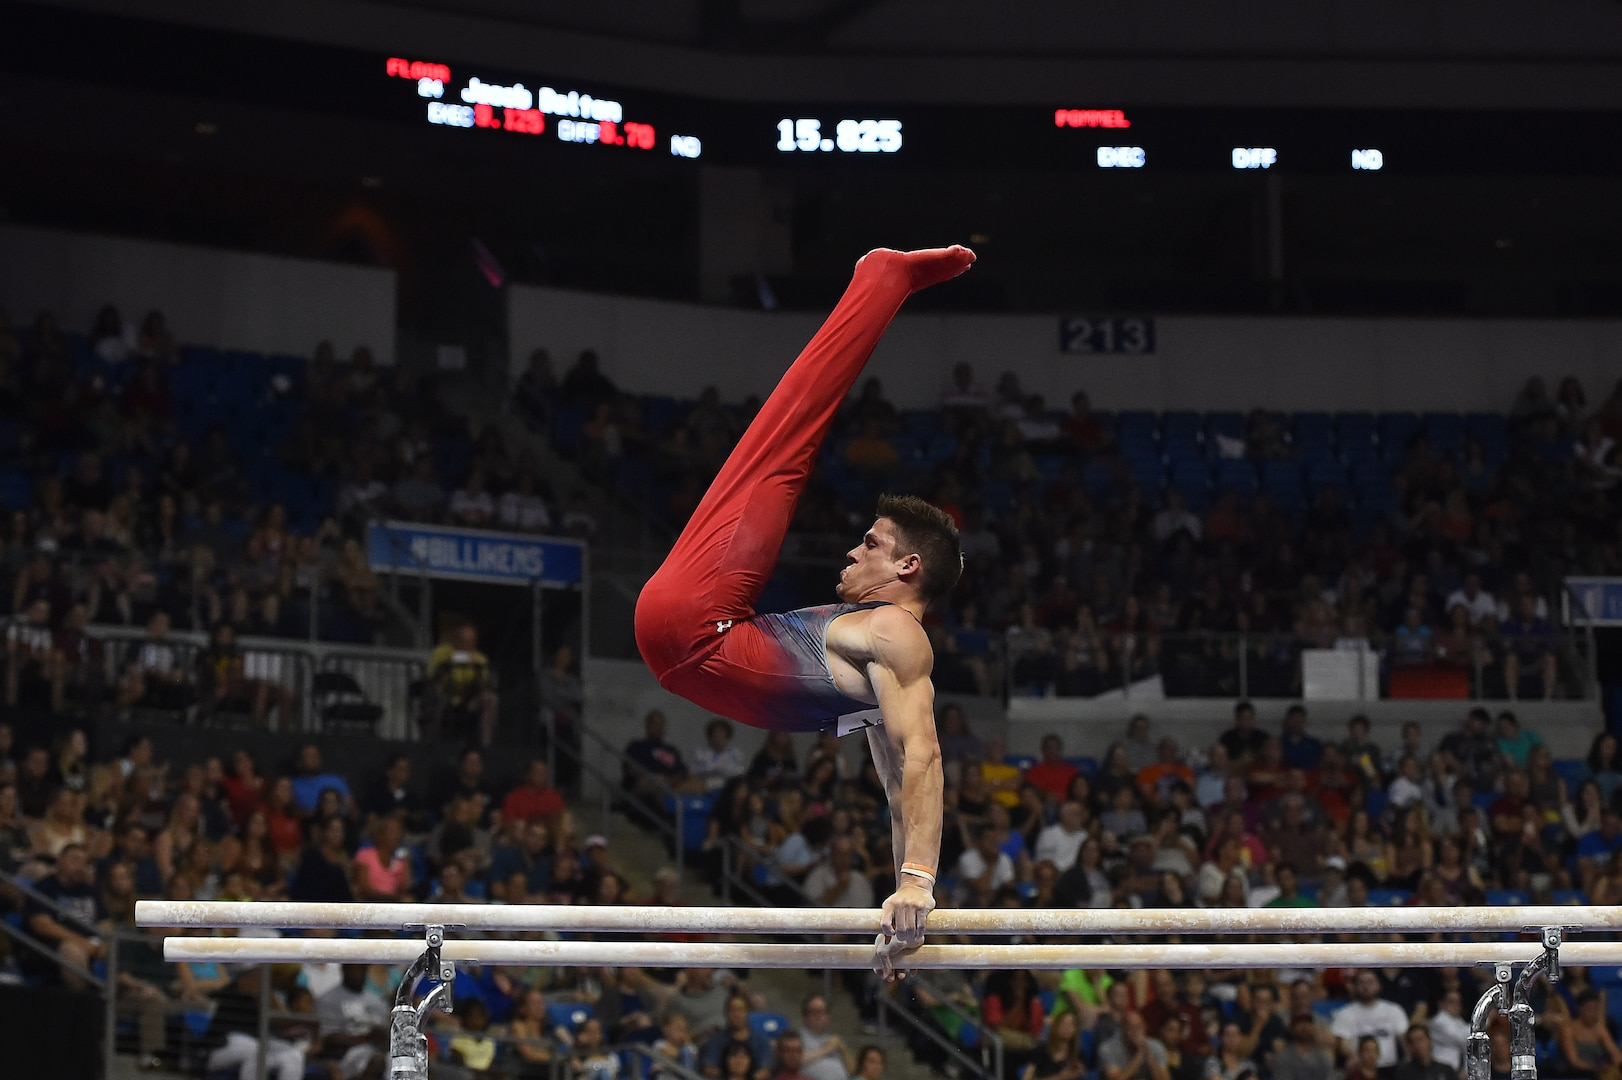 A gymnast swings on the parallel bars.